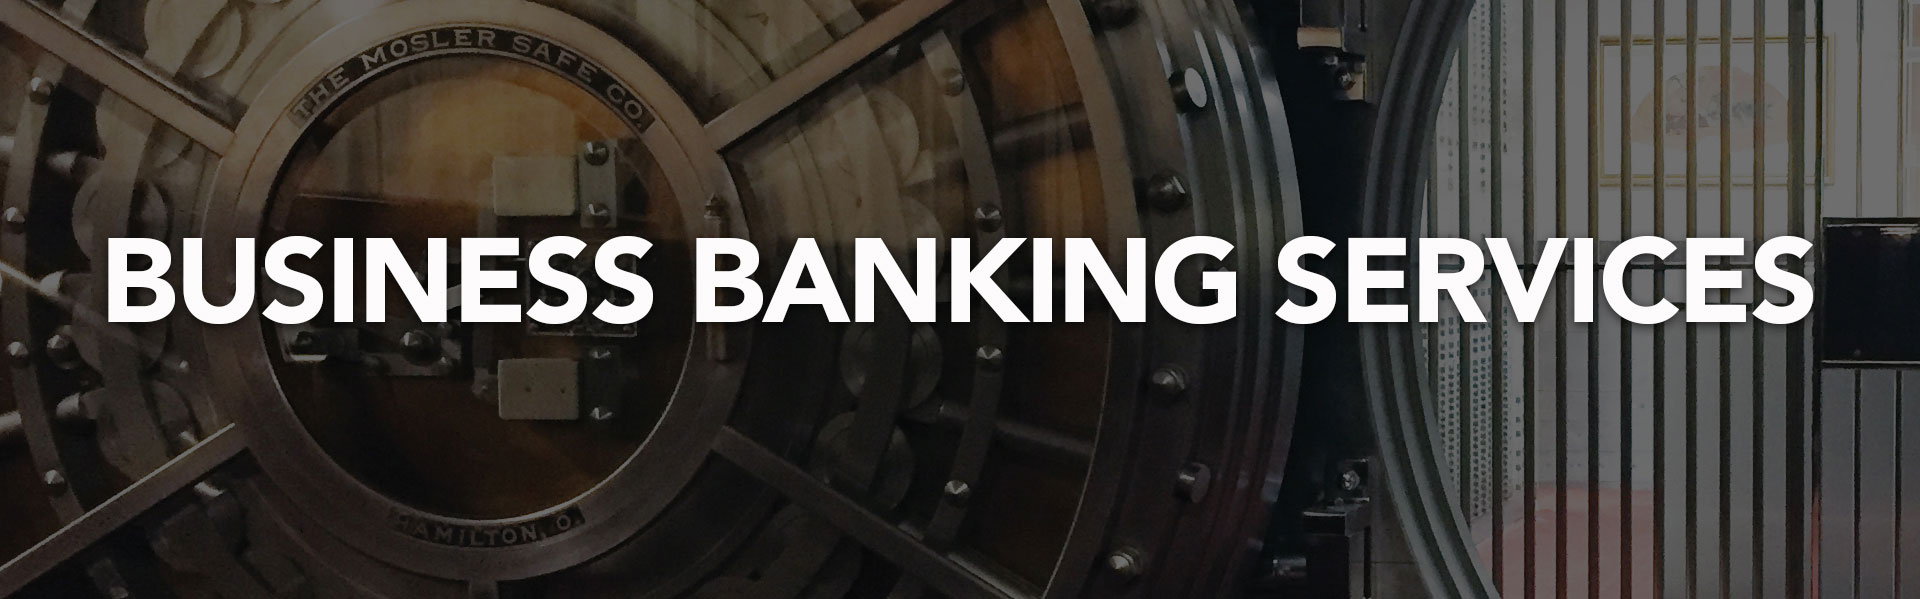 IBC Bank Business Other Banking Services